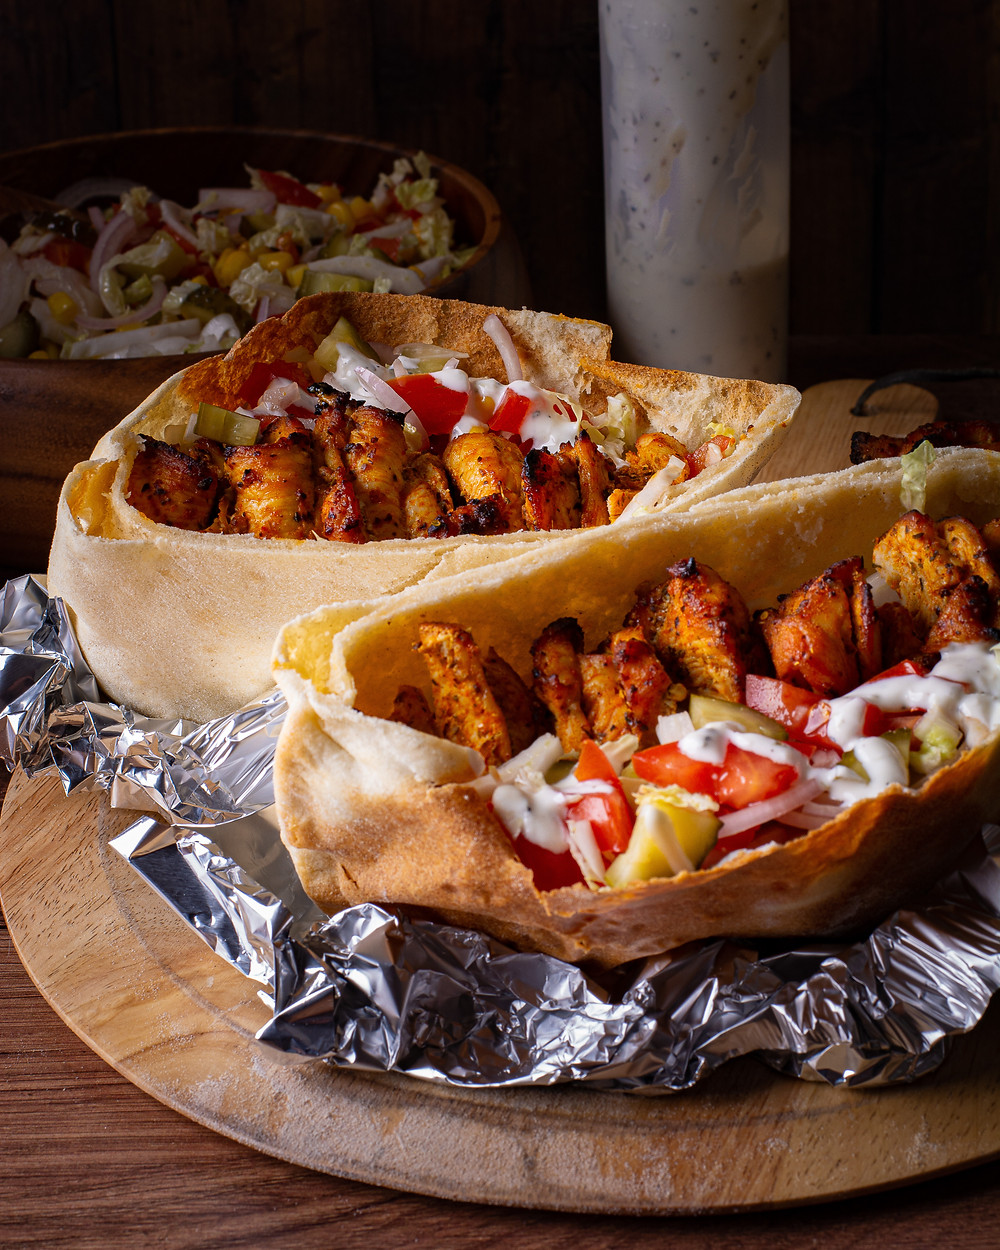 Chicken Gyros Kebab on the table